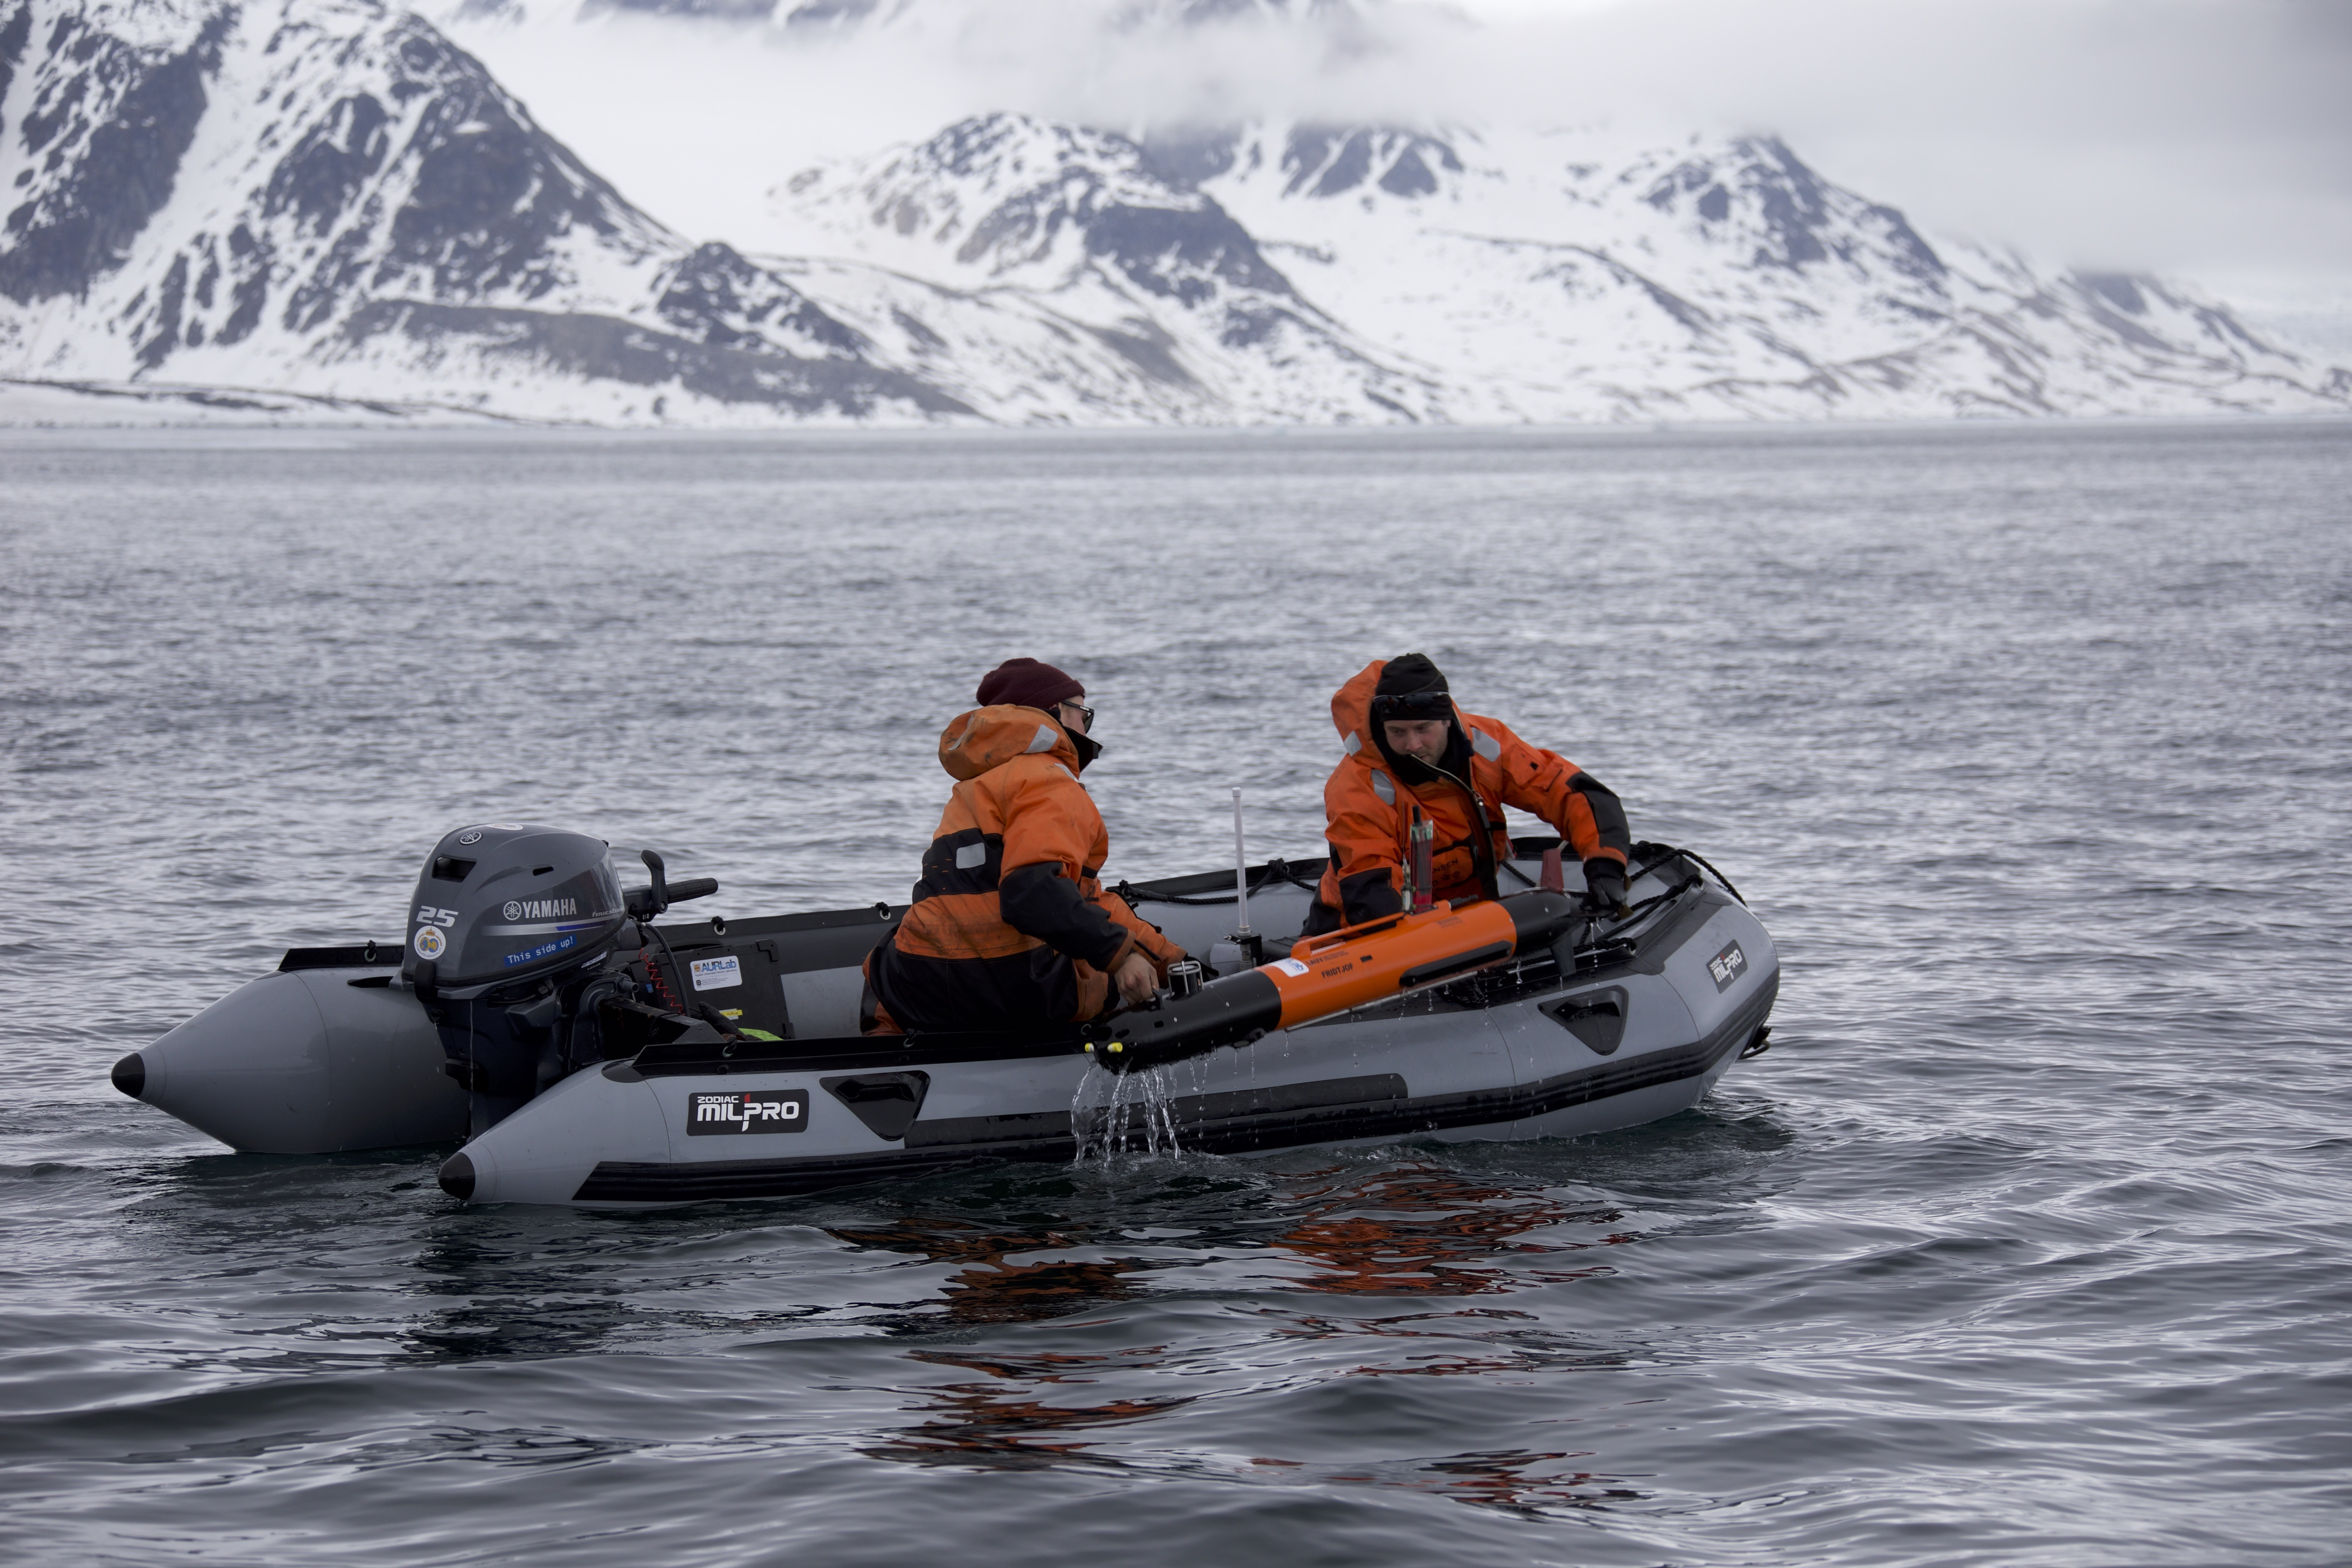 The scientists on the boat picking up the AUV